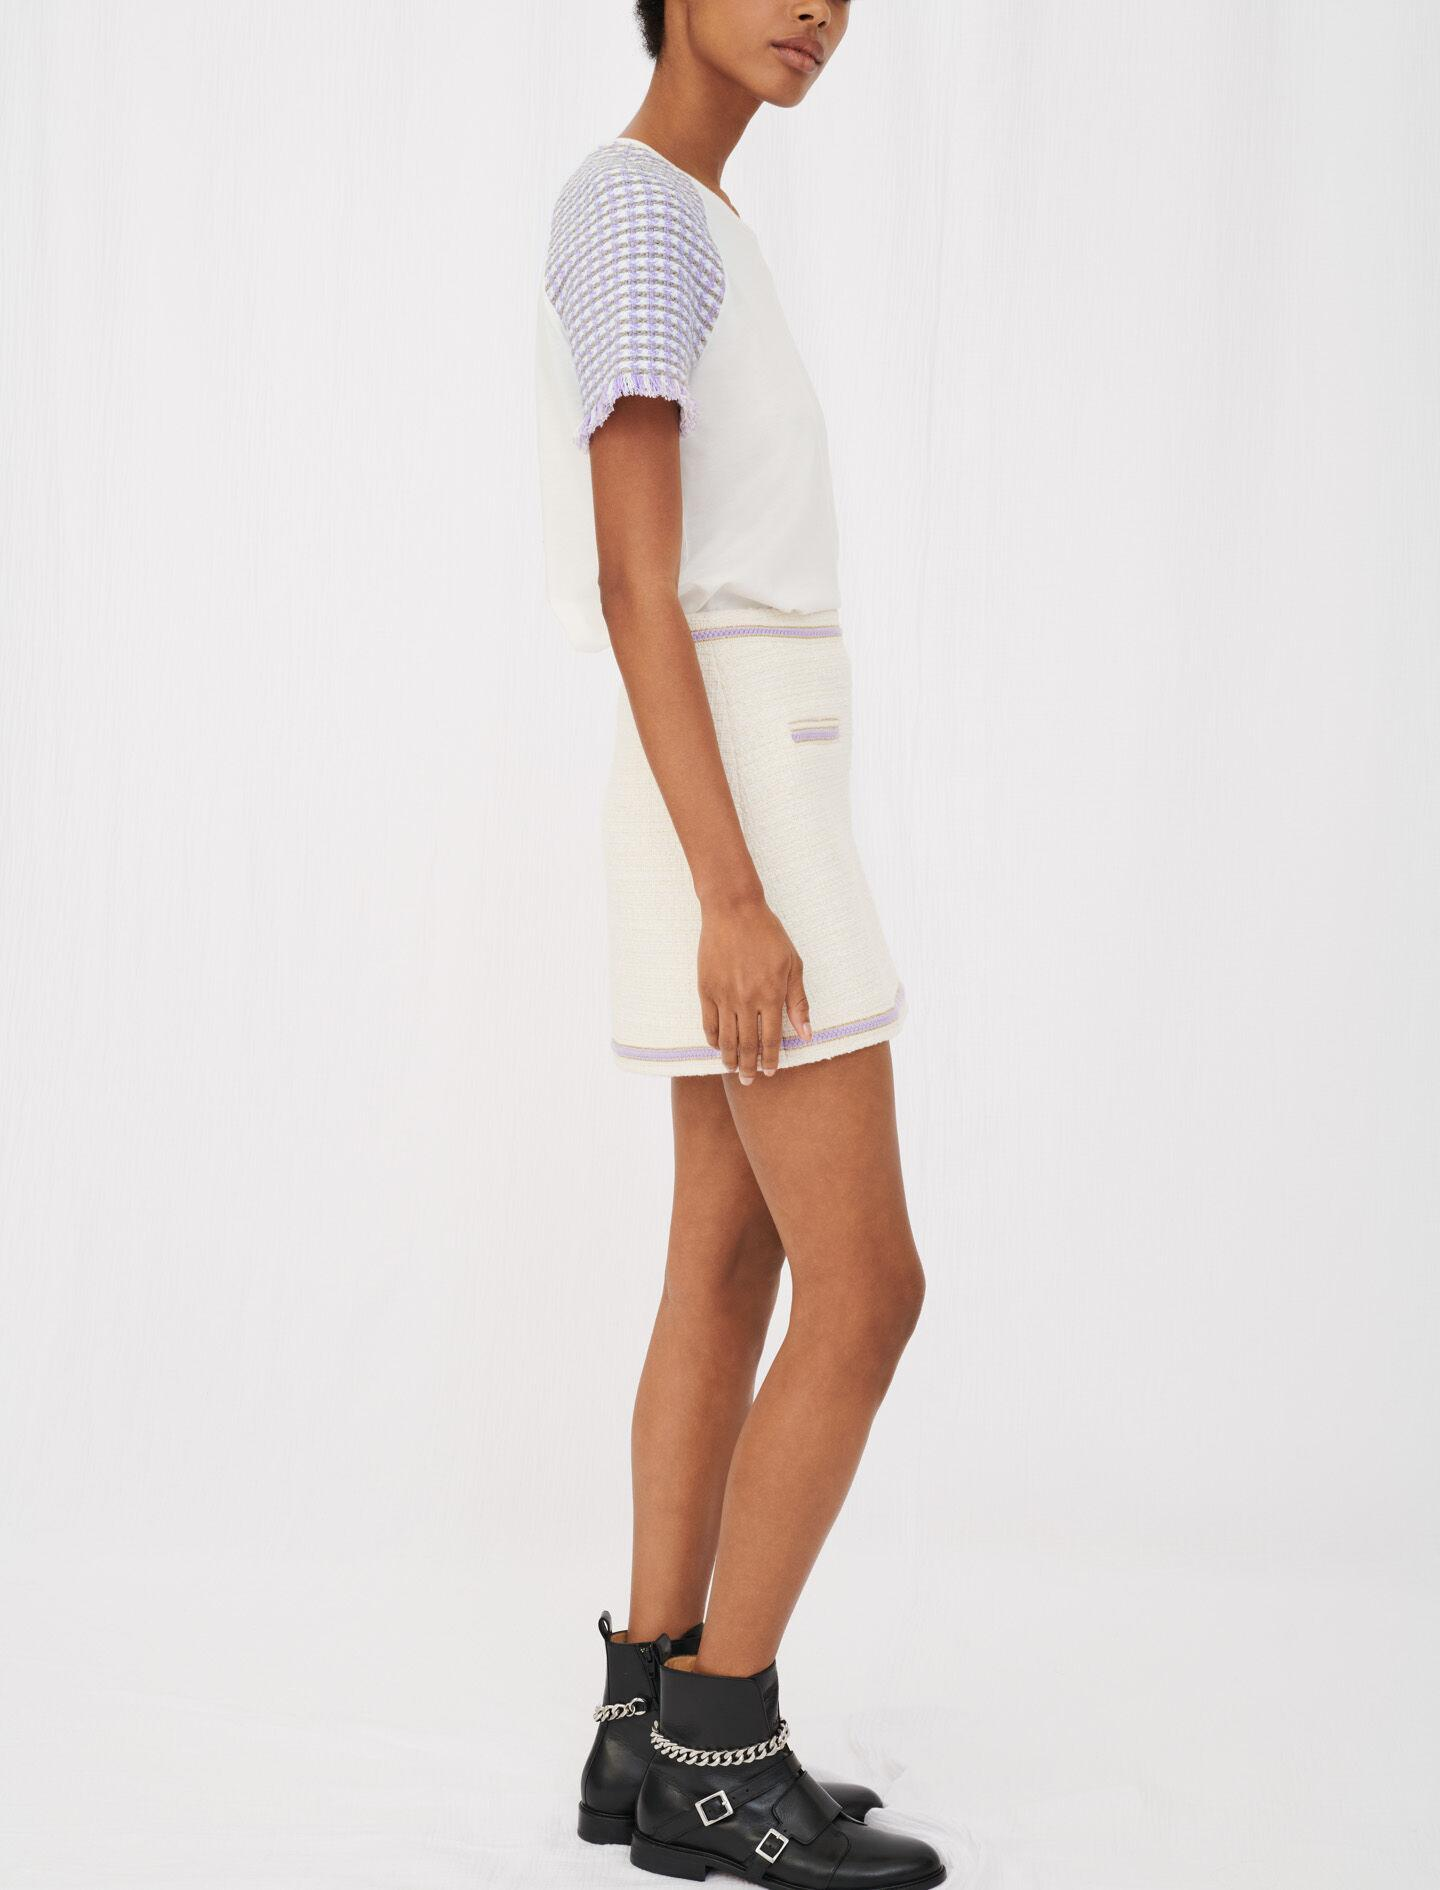 JERSEY T-SHIRT WITH TWEED SLEEVES 2